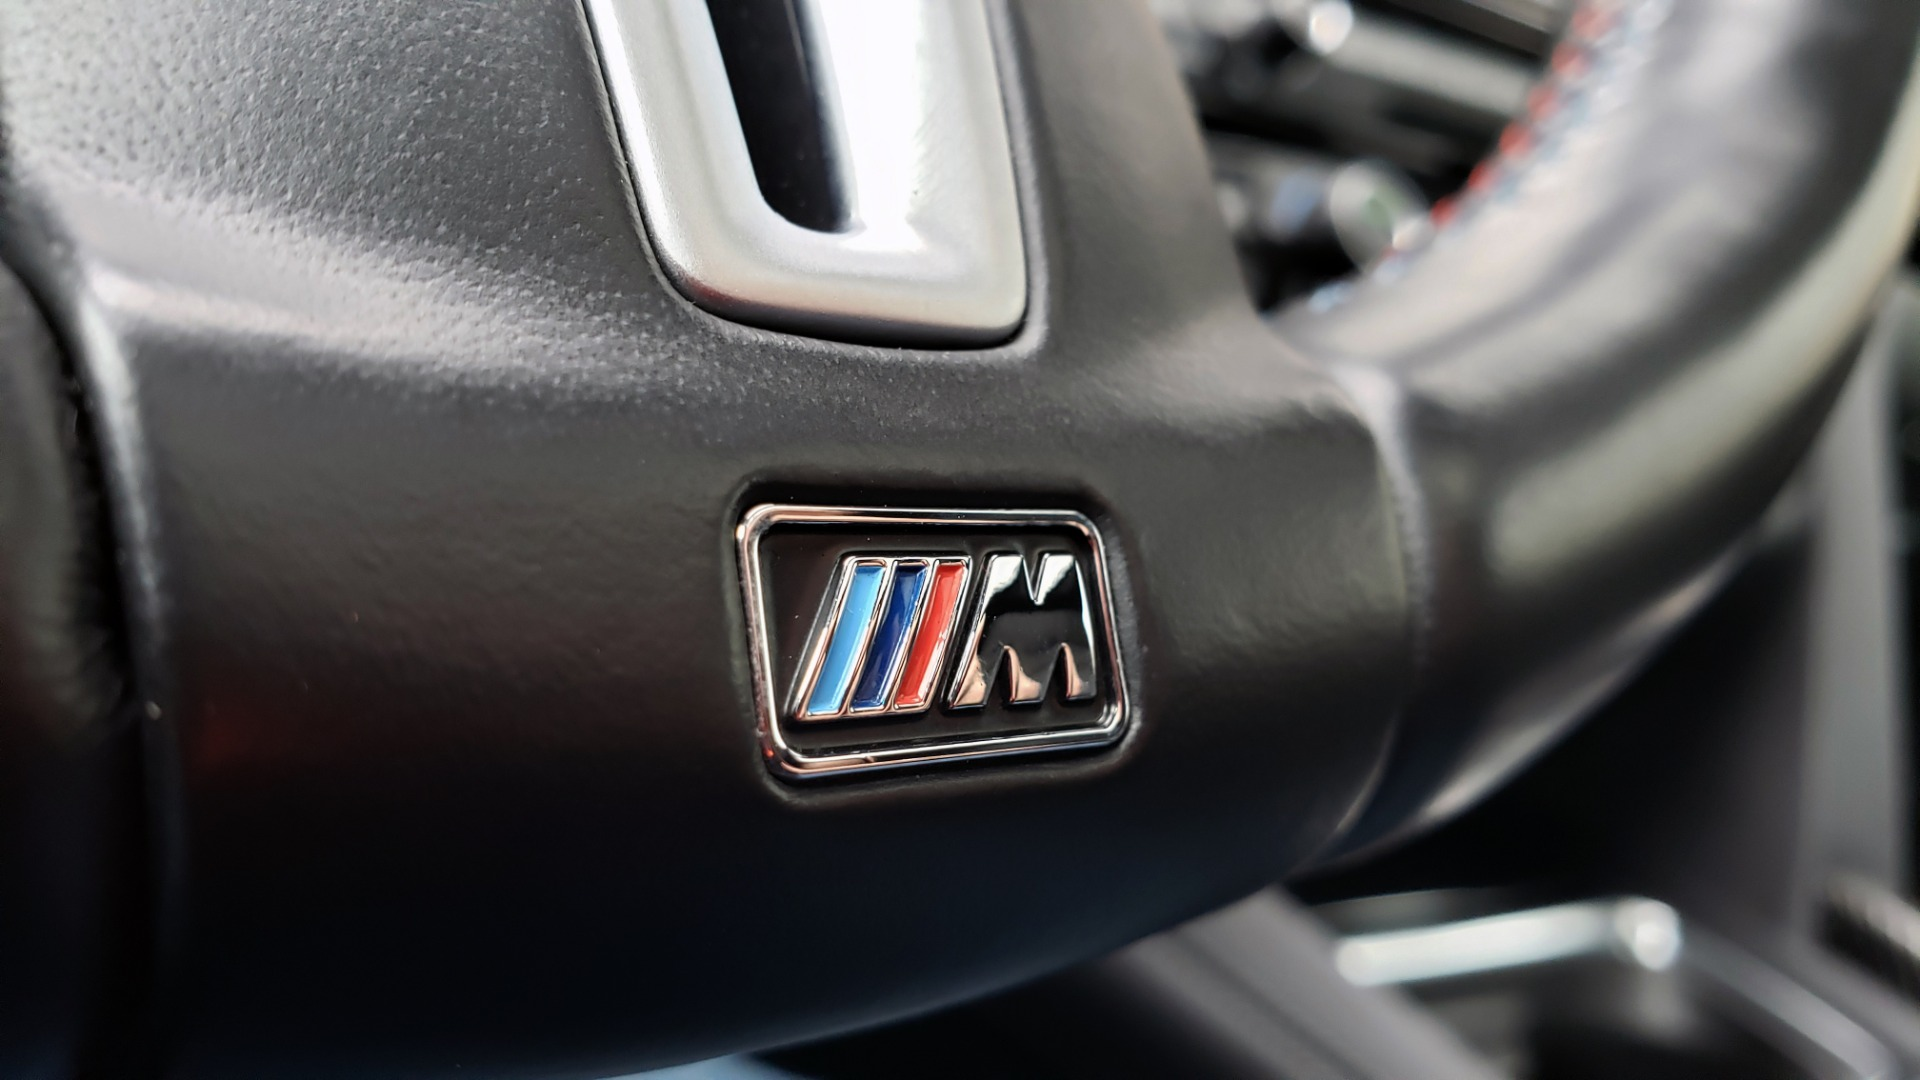 Used 2018 BMW M4 M-COMP / EXEC PKG / 7-SPD DBL CLUTCH / NAV / REARVIEW for sale Sold at Formula Imports in Charlotte NC 28227 34